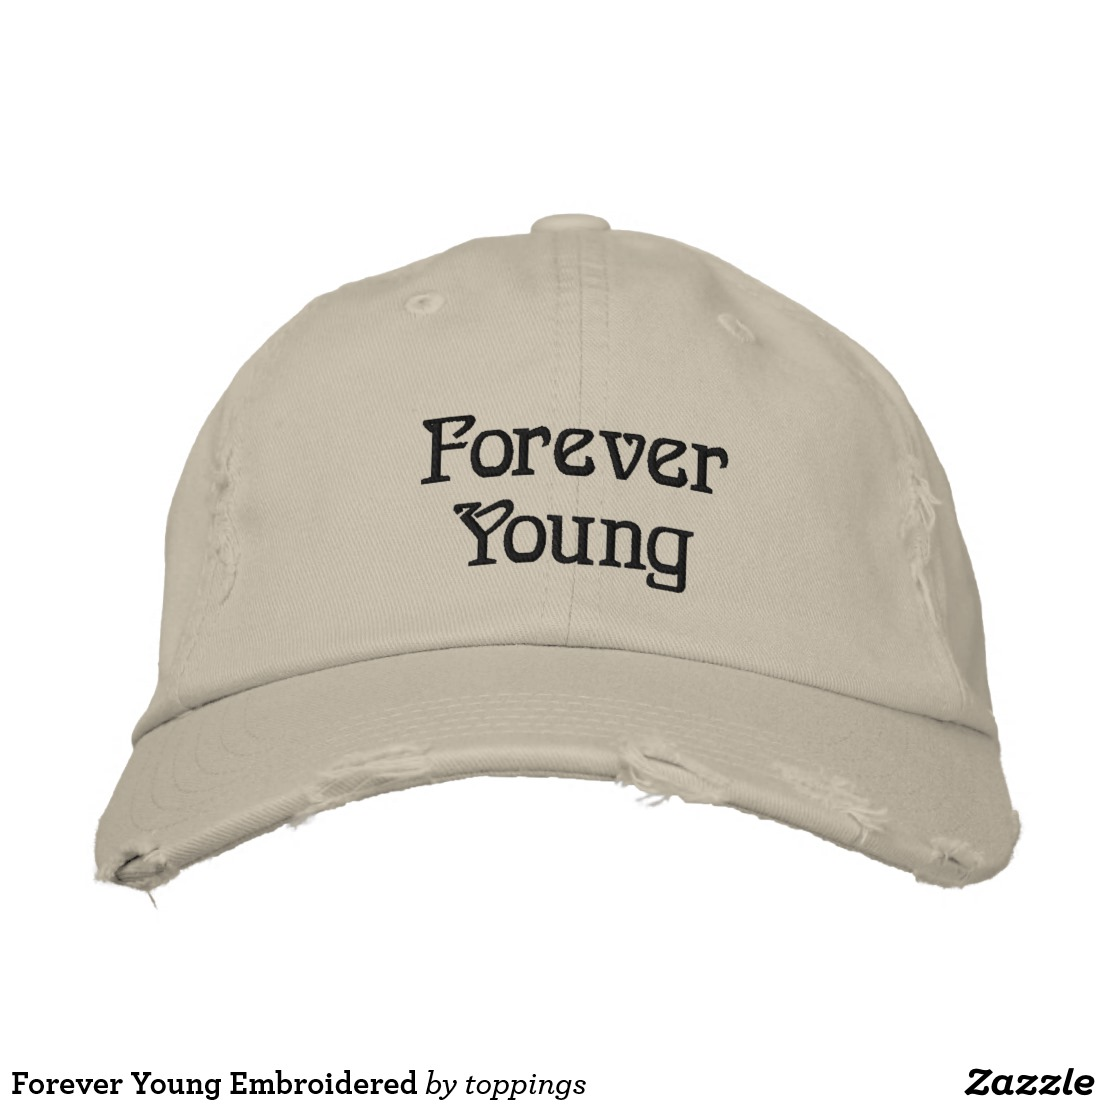 Forever Young Embroidered Embroidered Baseball Cap